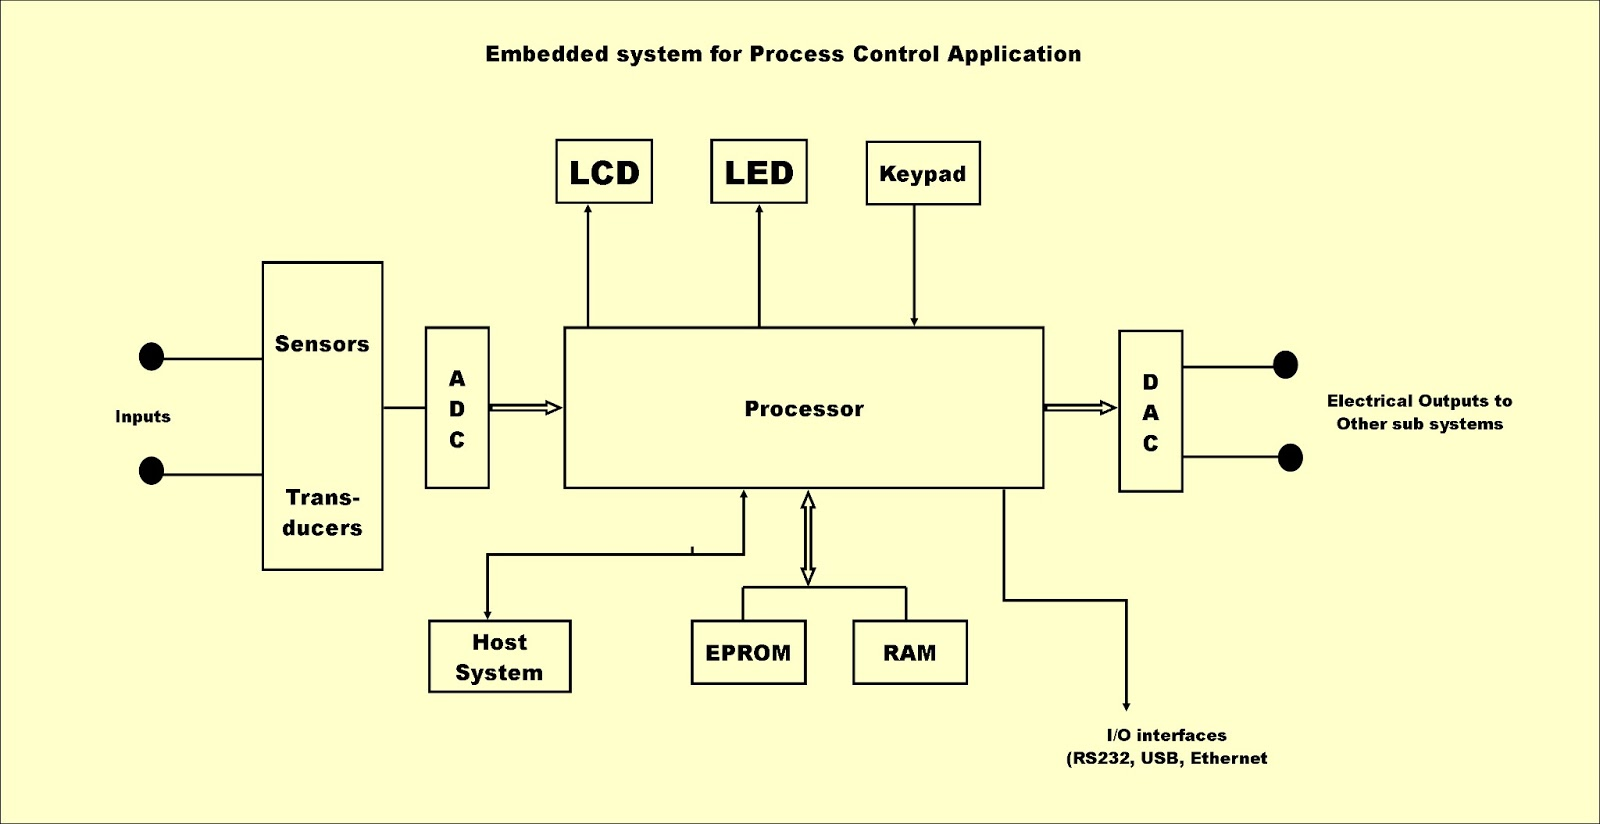 Its All About Embedded: How and Where we have been using them: A total  overview on Embedded Systems ApplicationsIts All About Embedded